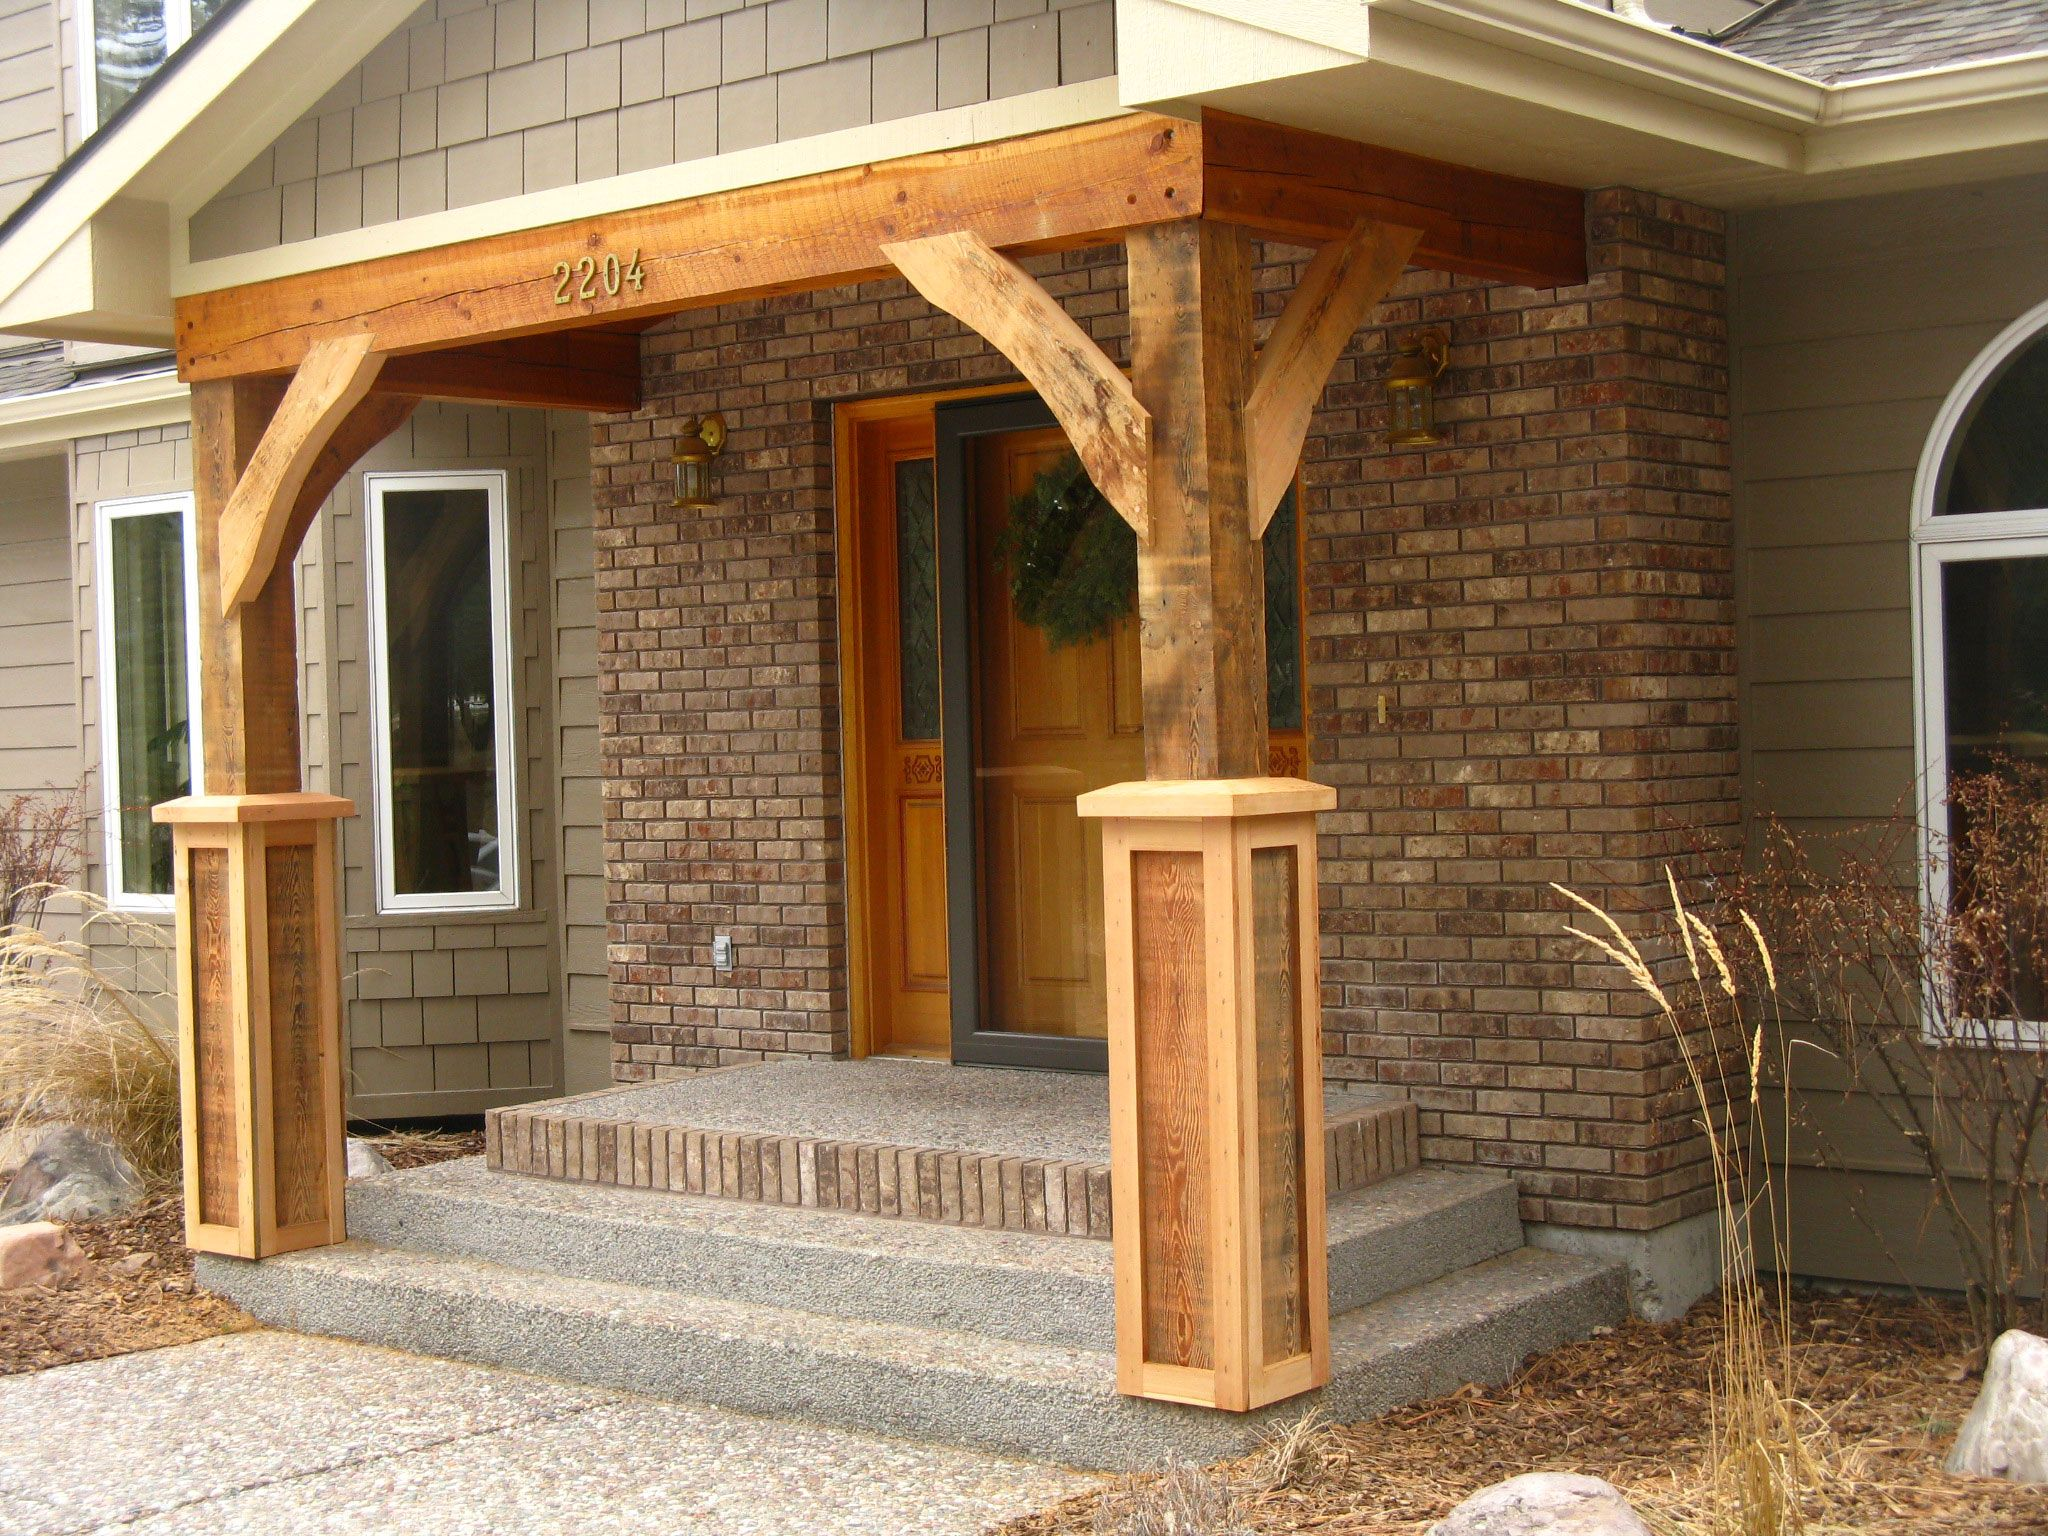 Front Porch Design Ideas 29 covered front porch design ideas for manufactured homes Porch Designs Yahoo Search Results